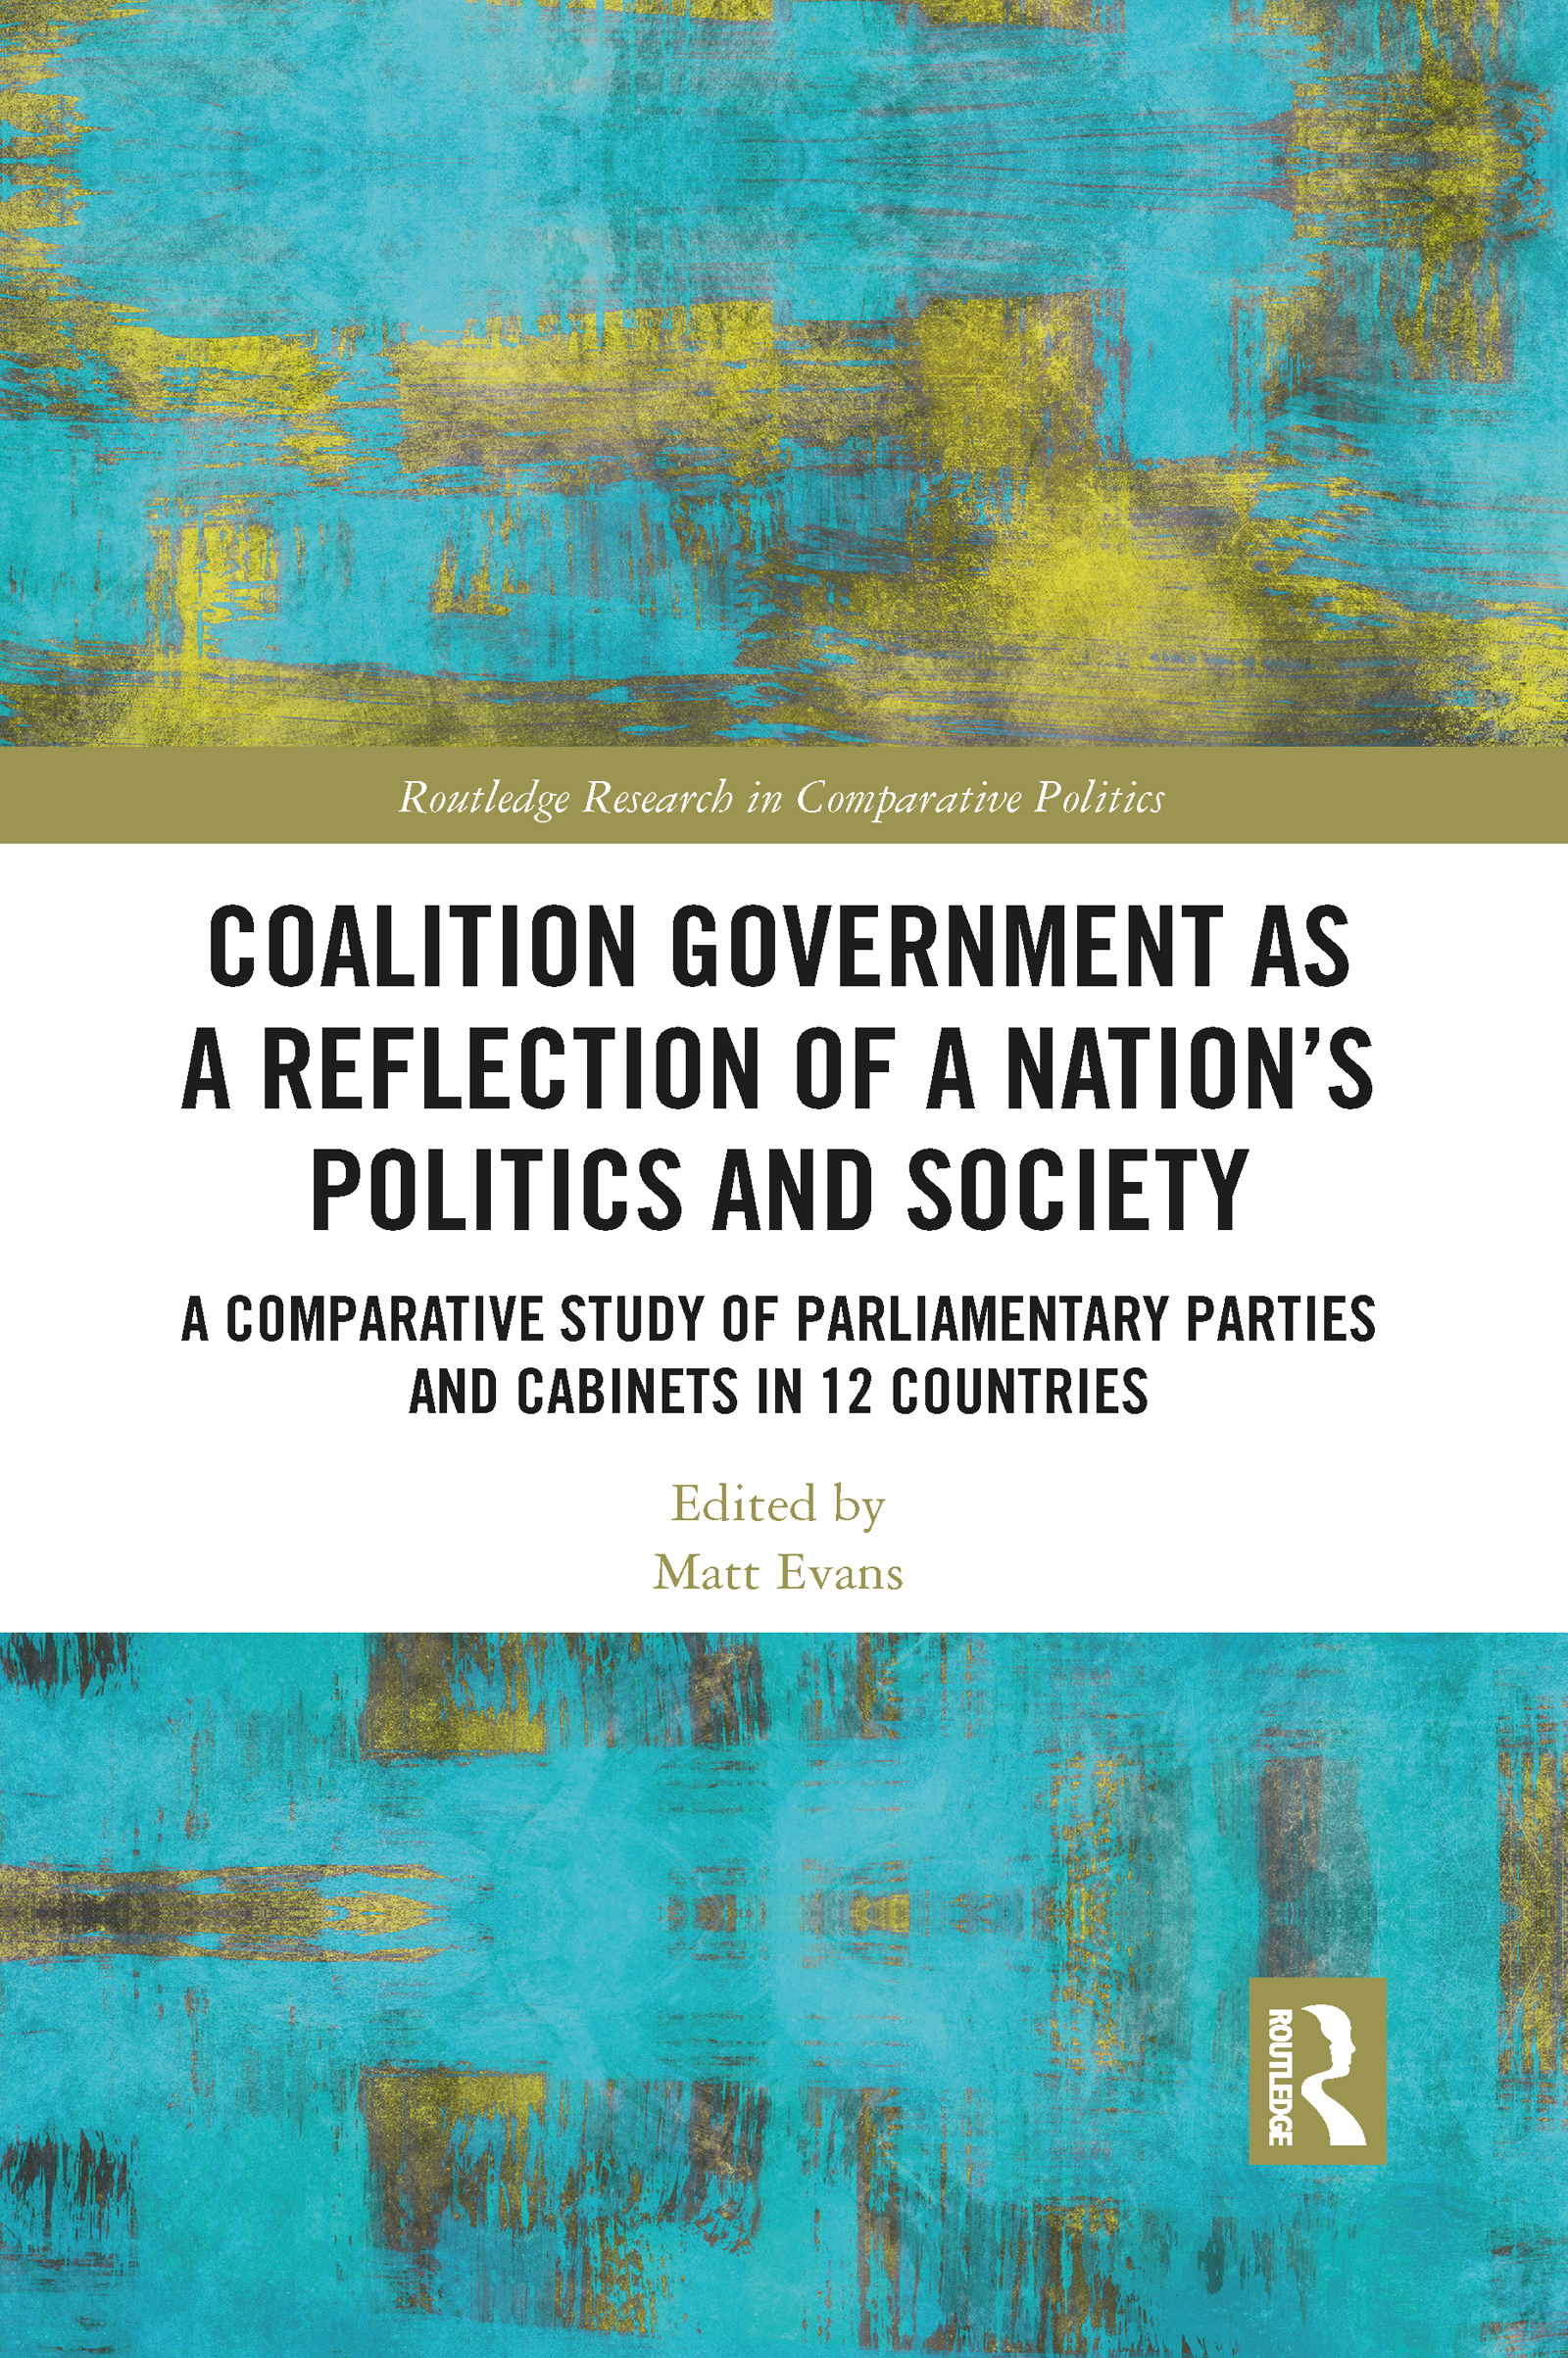 Coalition Government as a Reflection of a Nation's Politics and Society